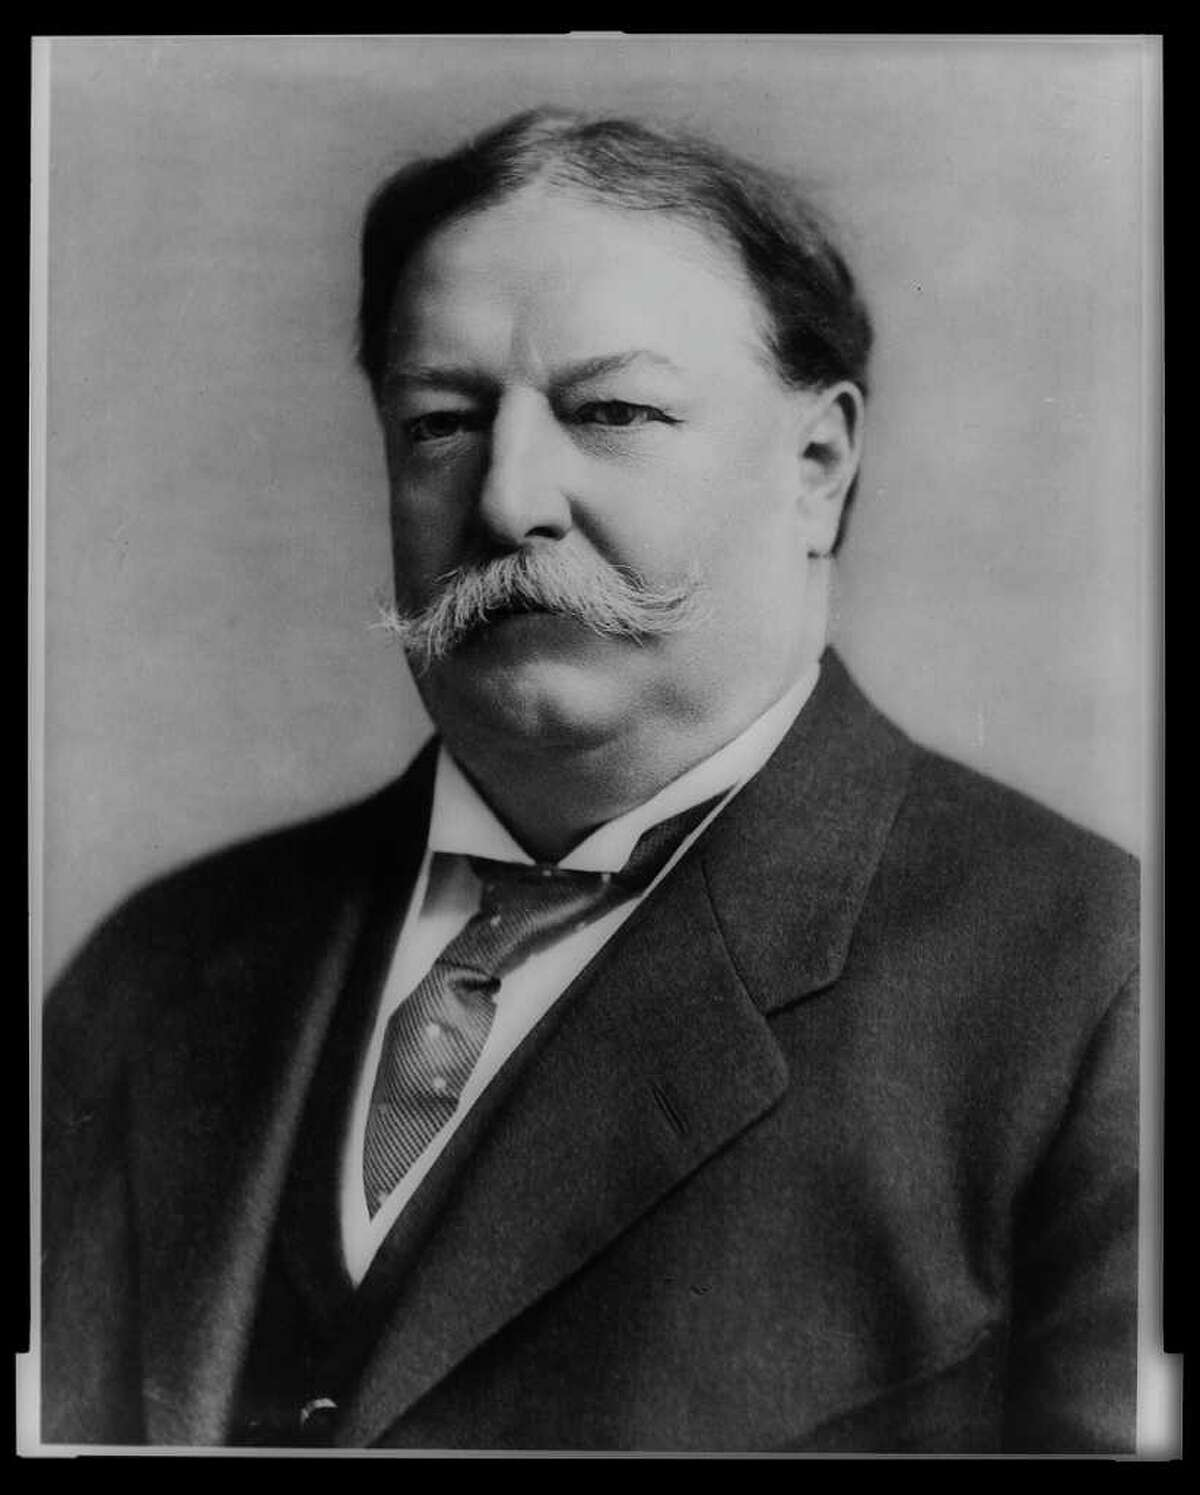 William Howard Taft Height: 6' Weight: 316 pounds BMI: 42.9 Obese